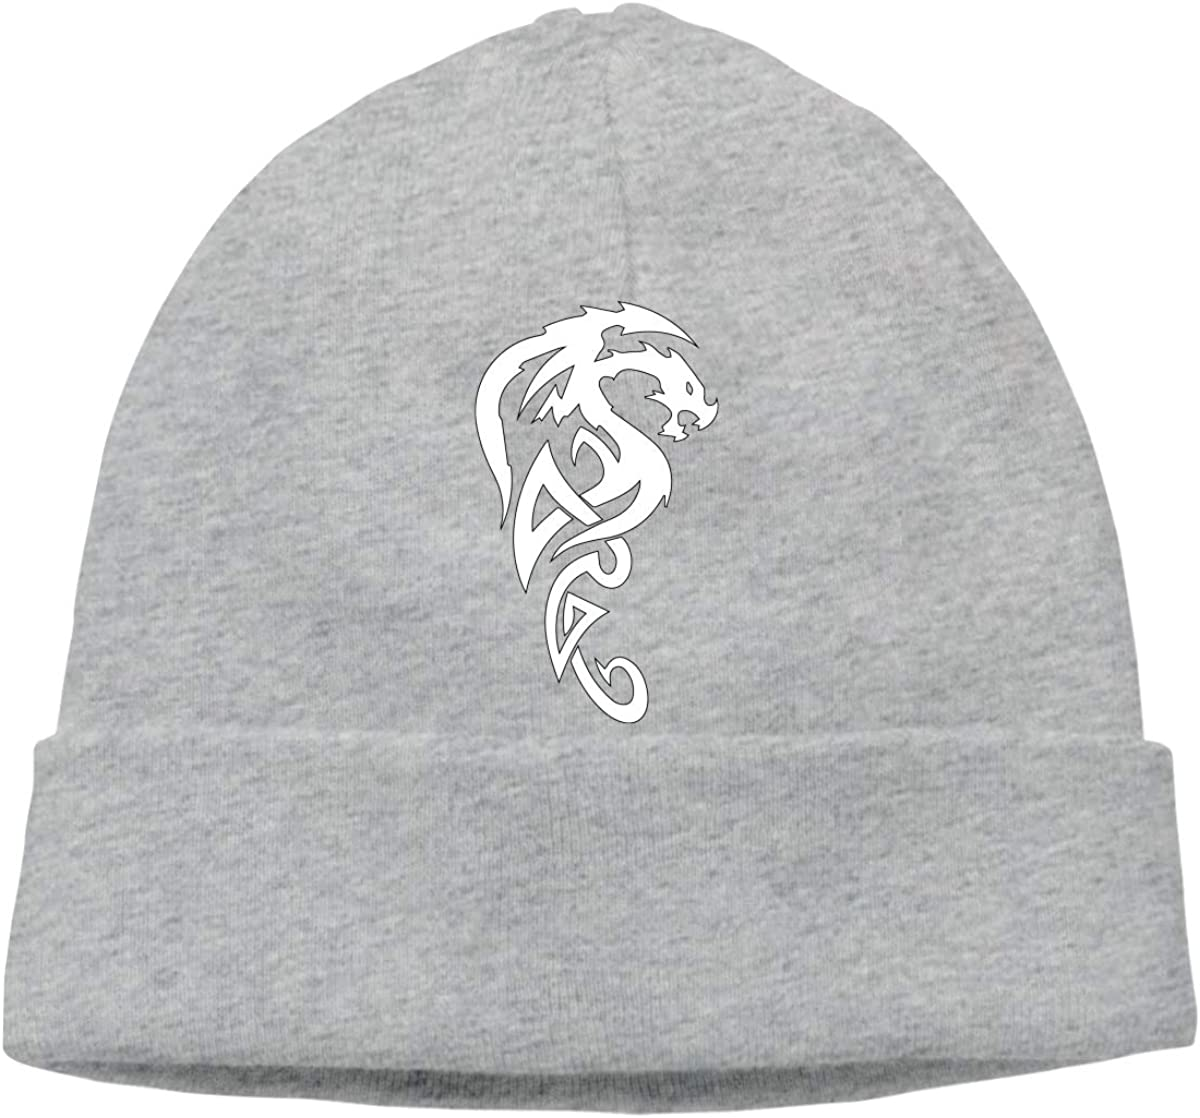 Unisex Tribal Dragon Outdoor Stretch Beanies Hat Soft Winter Knit Caps